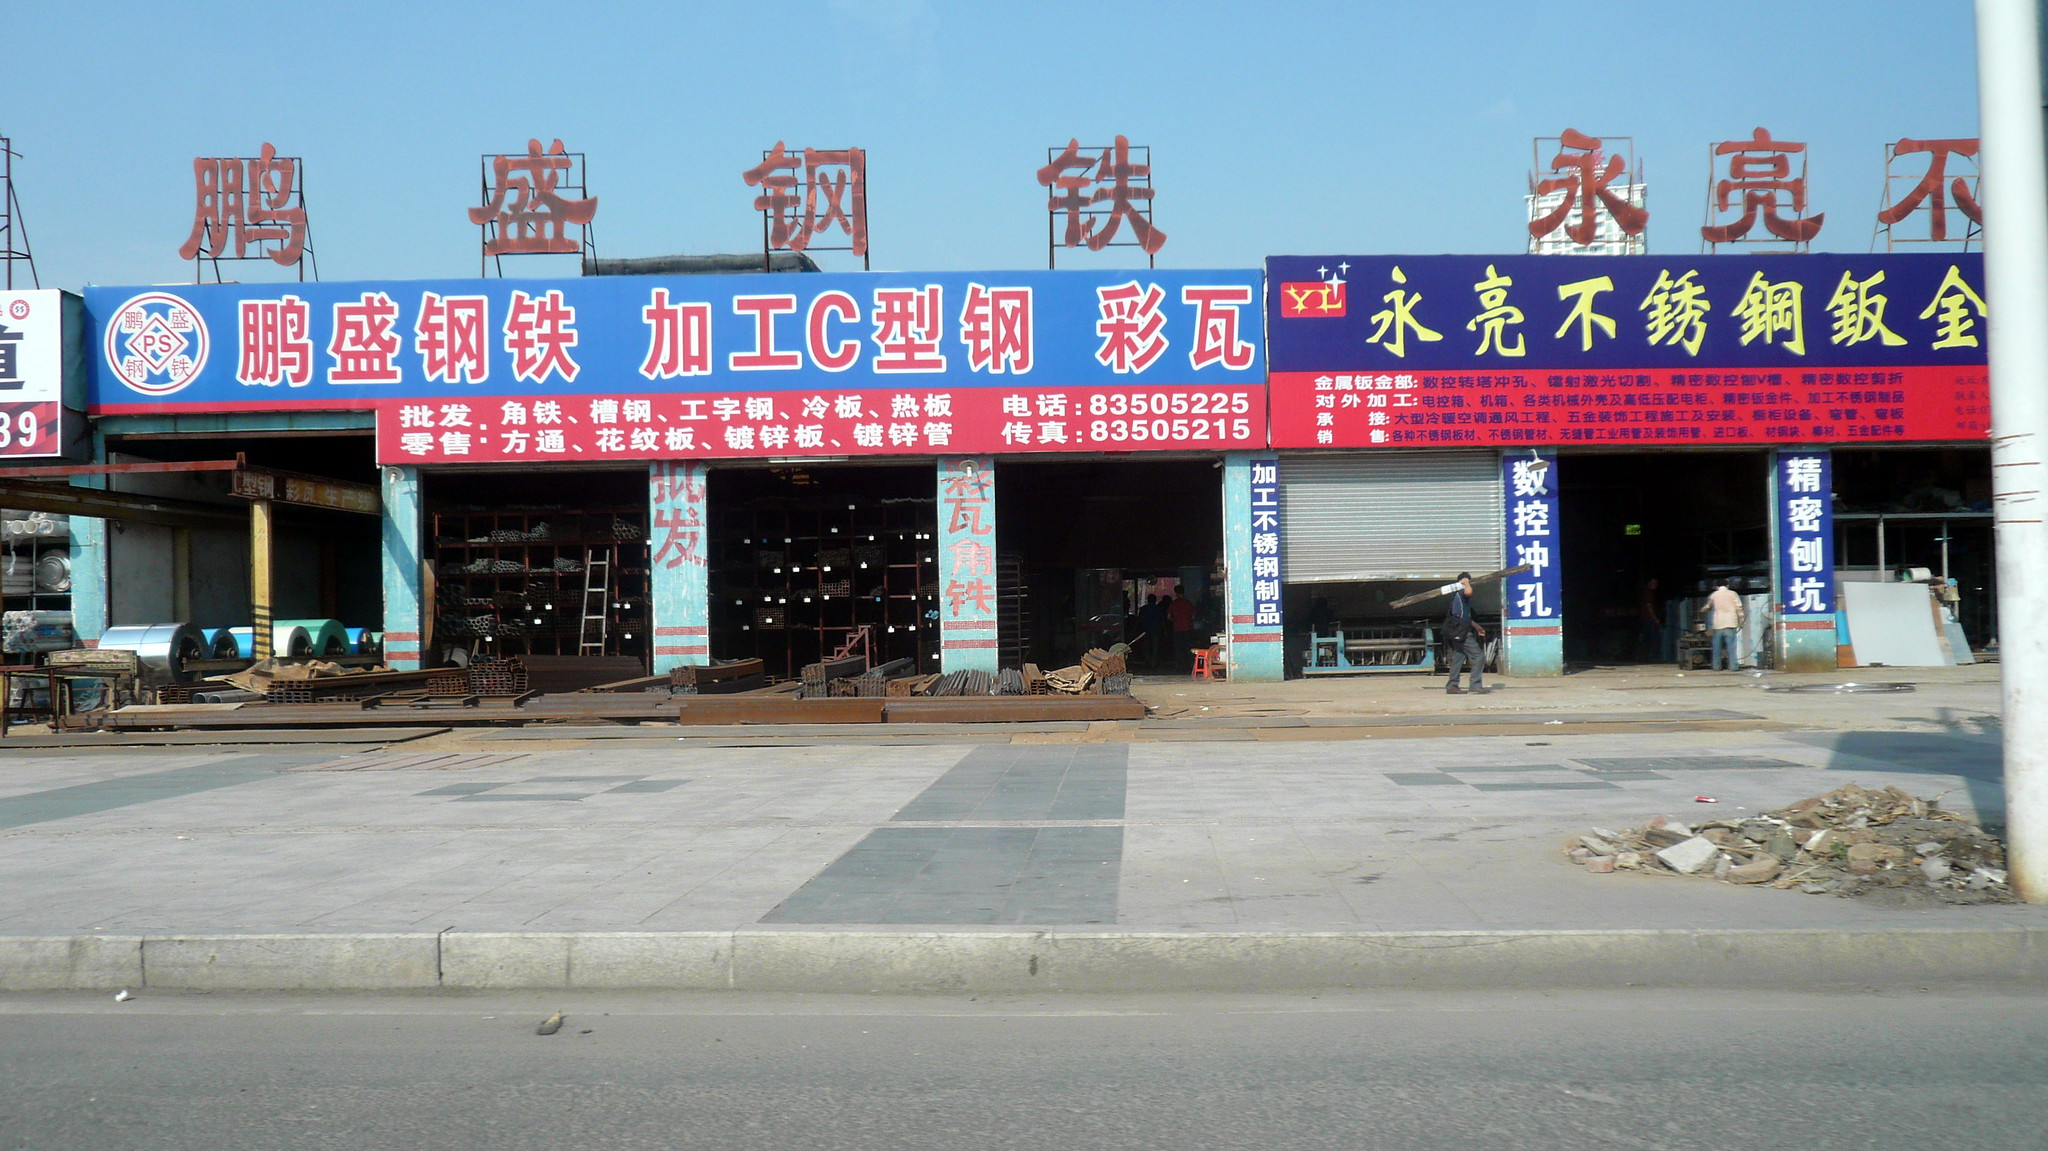 Exterior image of steel shop in China